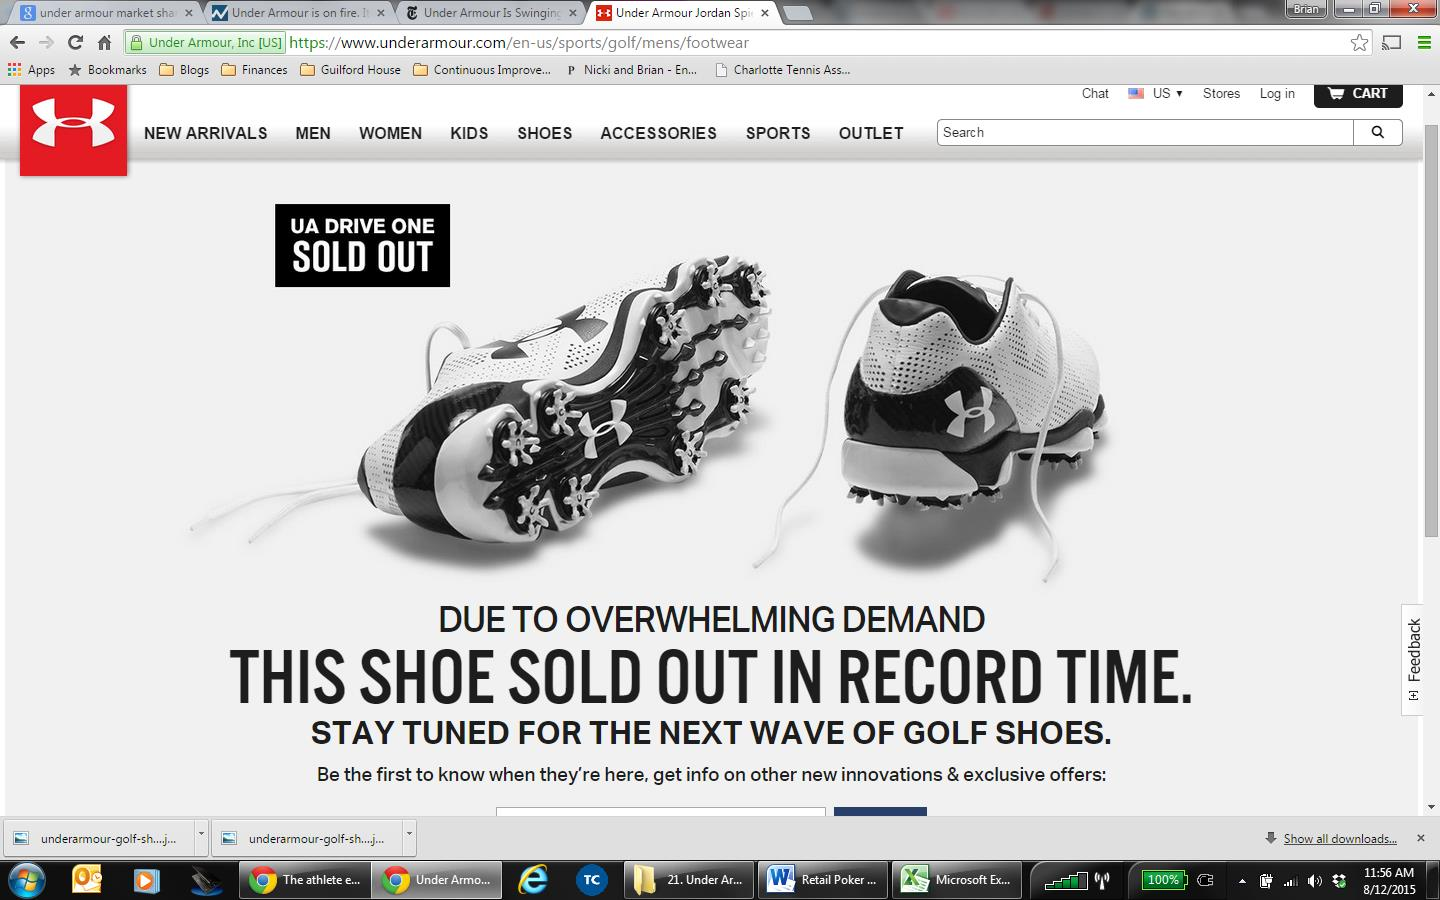 under armour website as of august 12 2015 the jordan spieth ua drive one is still sold out